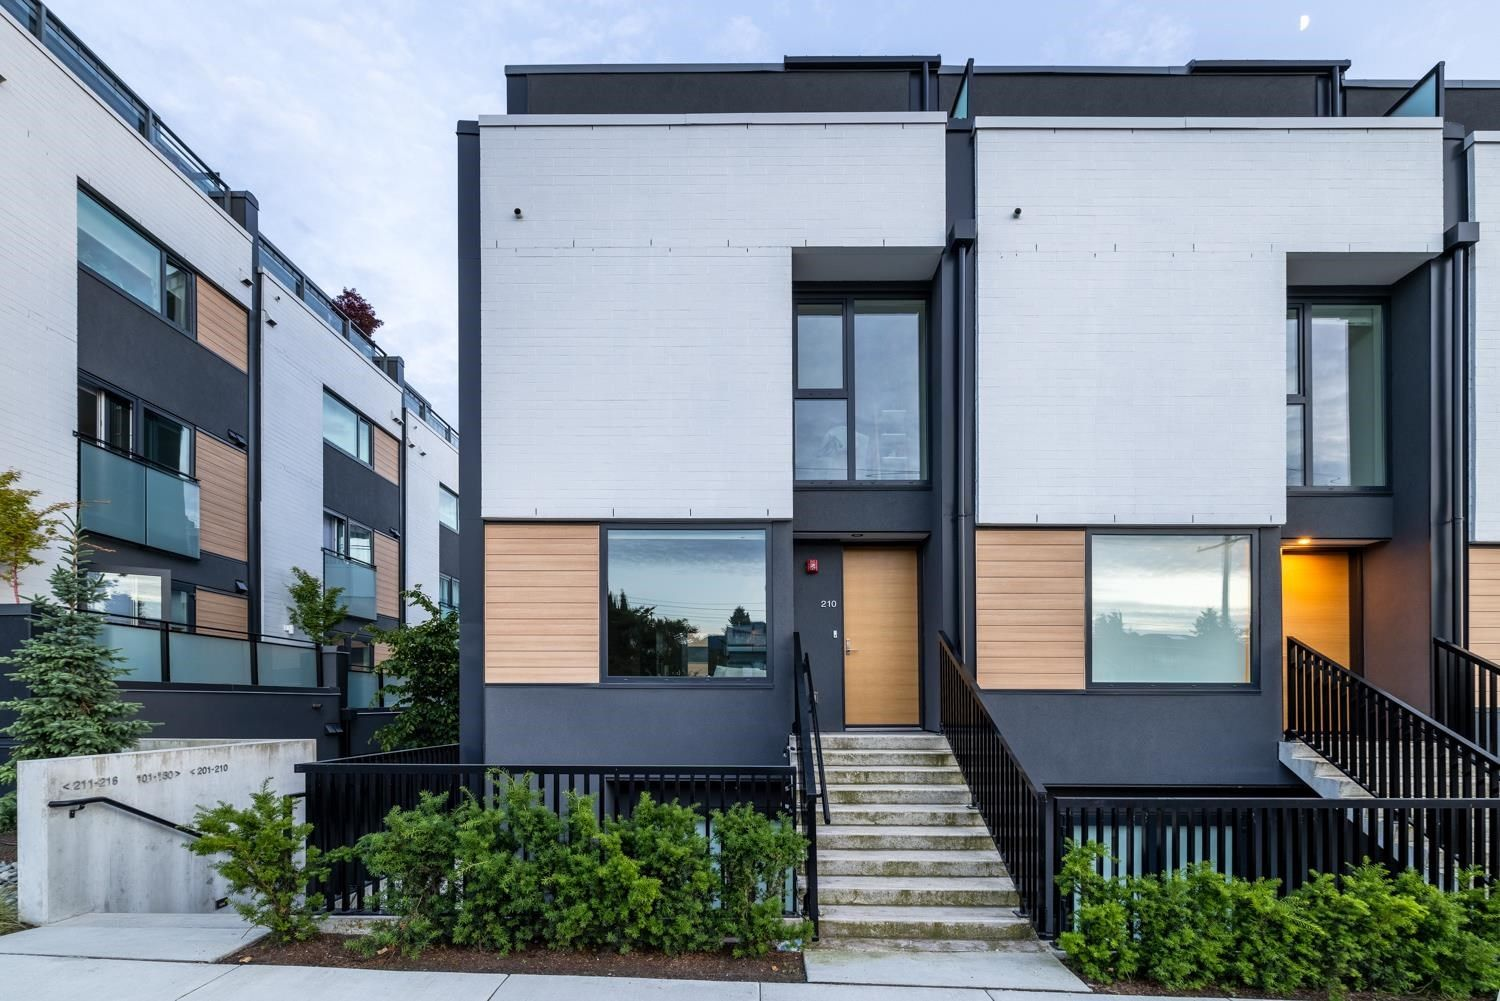 Main Photo: #210 - 649 E.3rd St, in North Vancouver: Lower Lonsdale Townhouse for sale : MLS®# R2592959